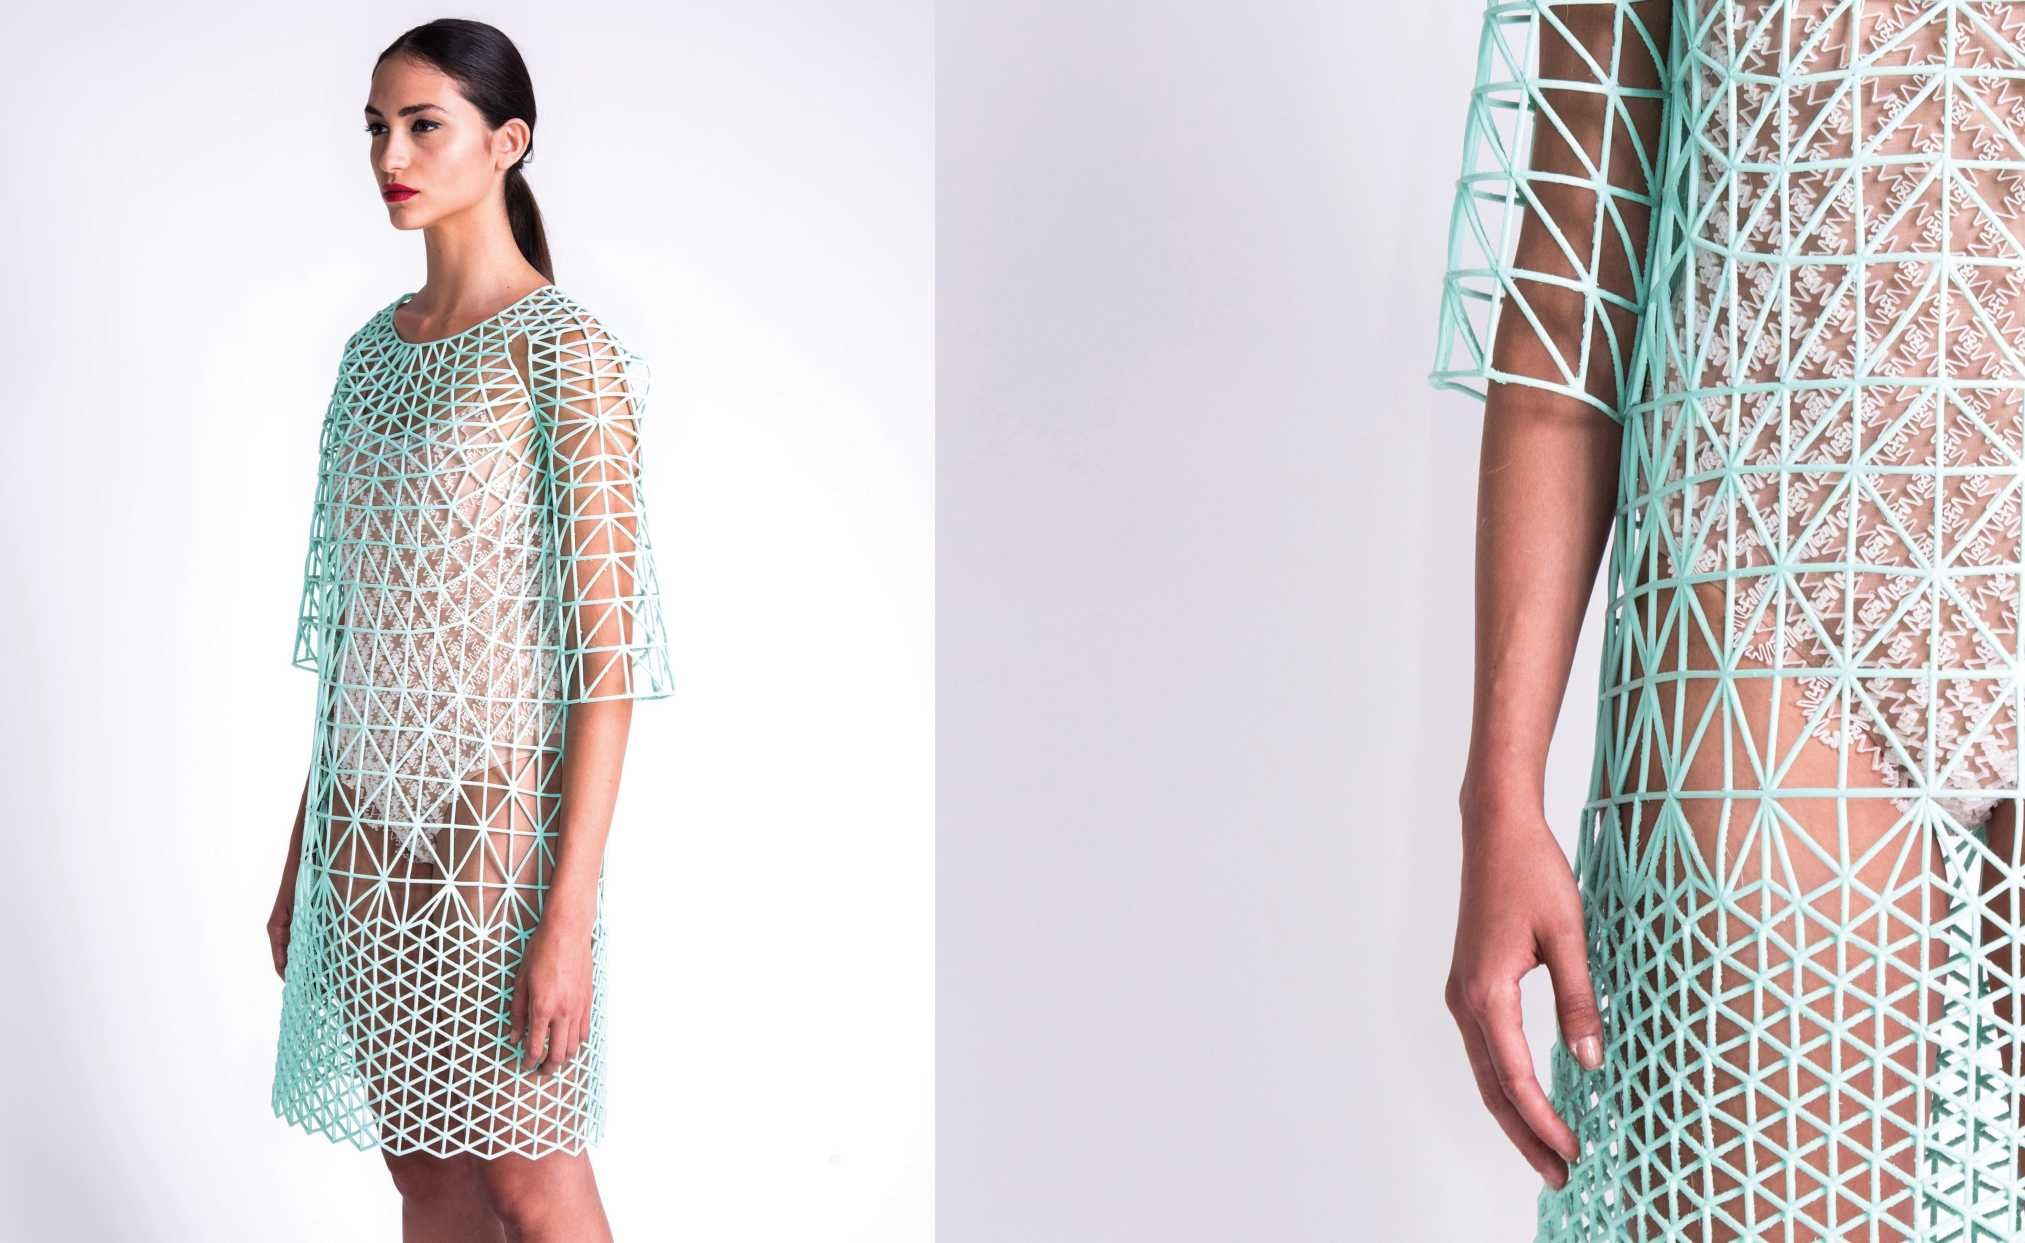 Danit Peleg's 3-D printed graduate collection. Photo: Danit Peleg.